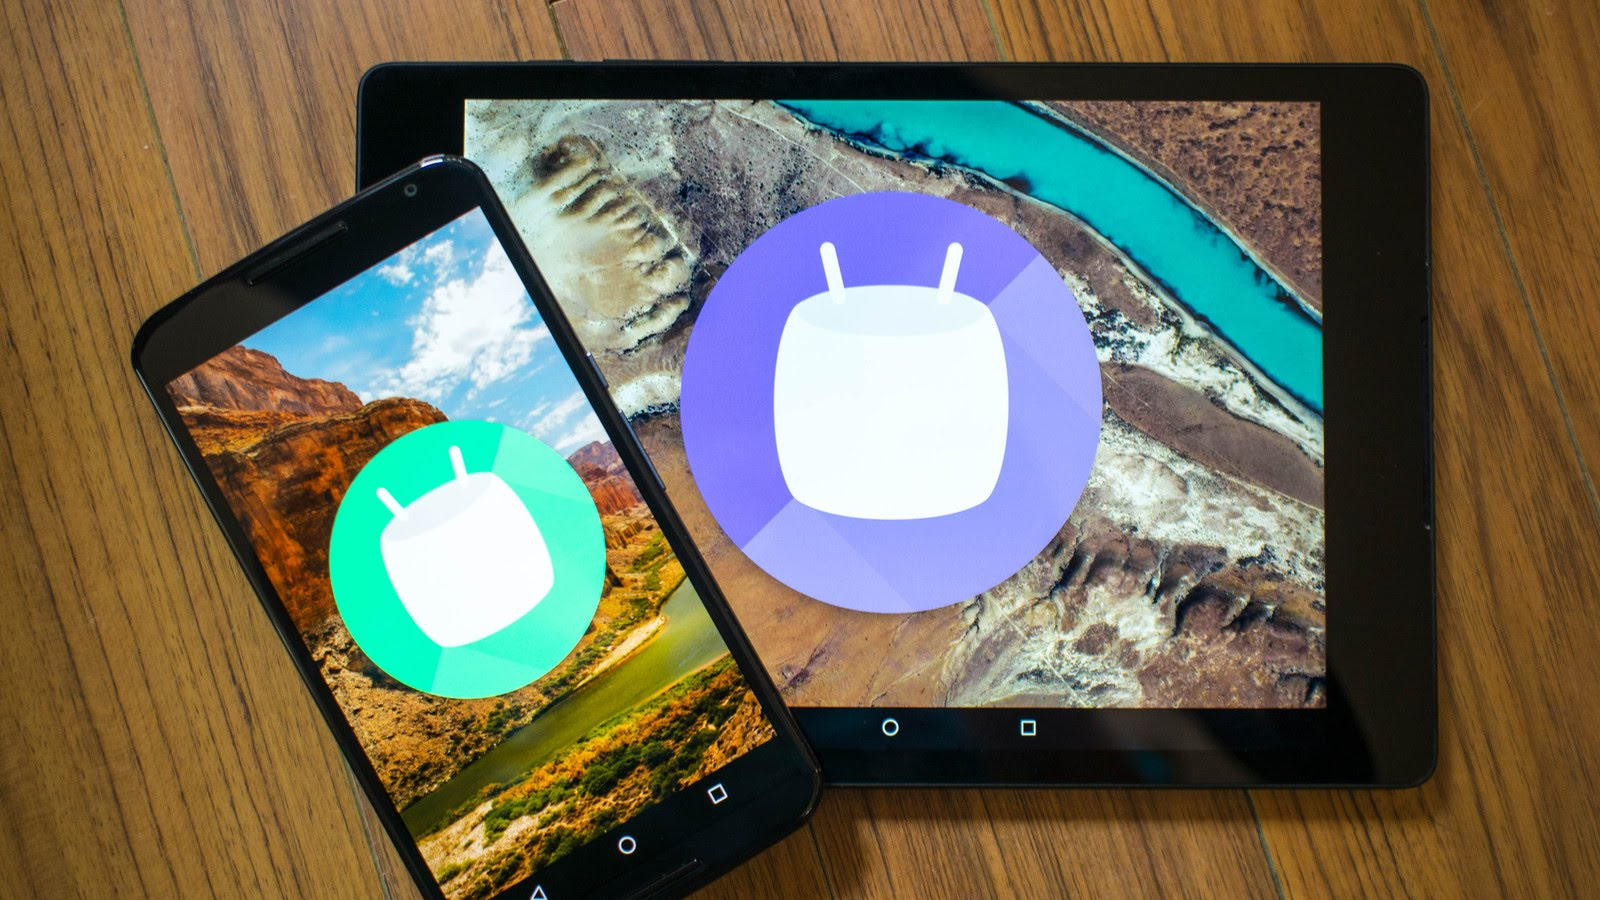 Android 7.0 Nougat: Secret Features You Are Still Unaware Of